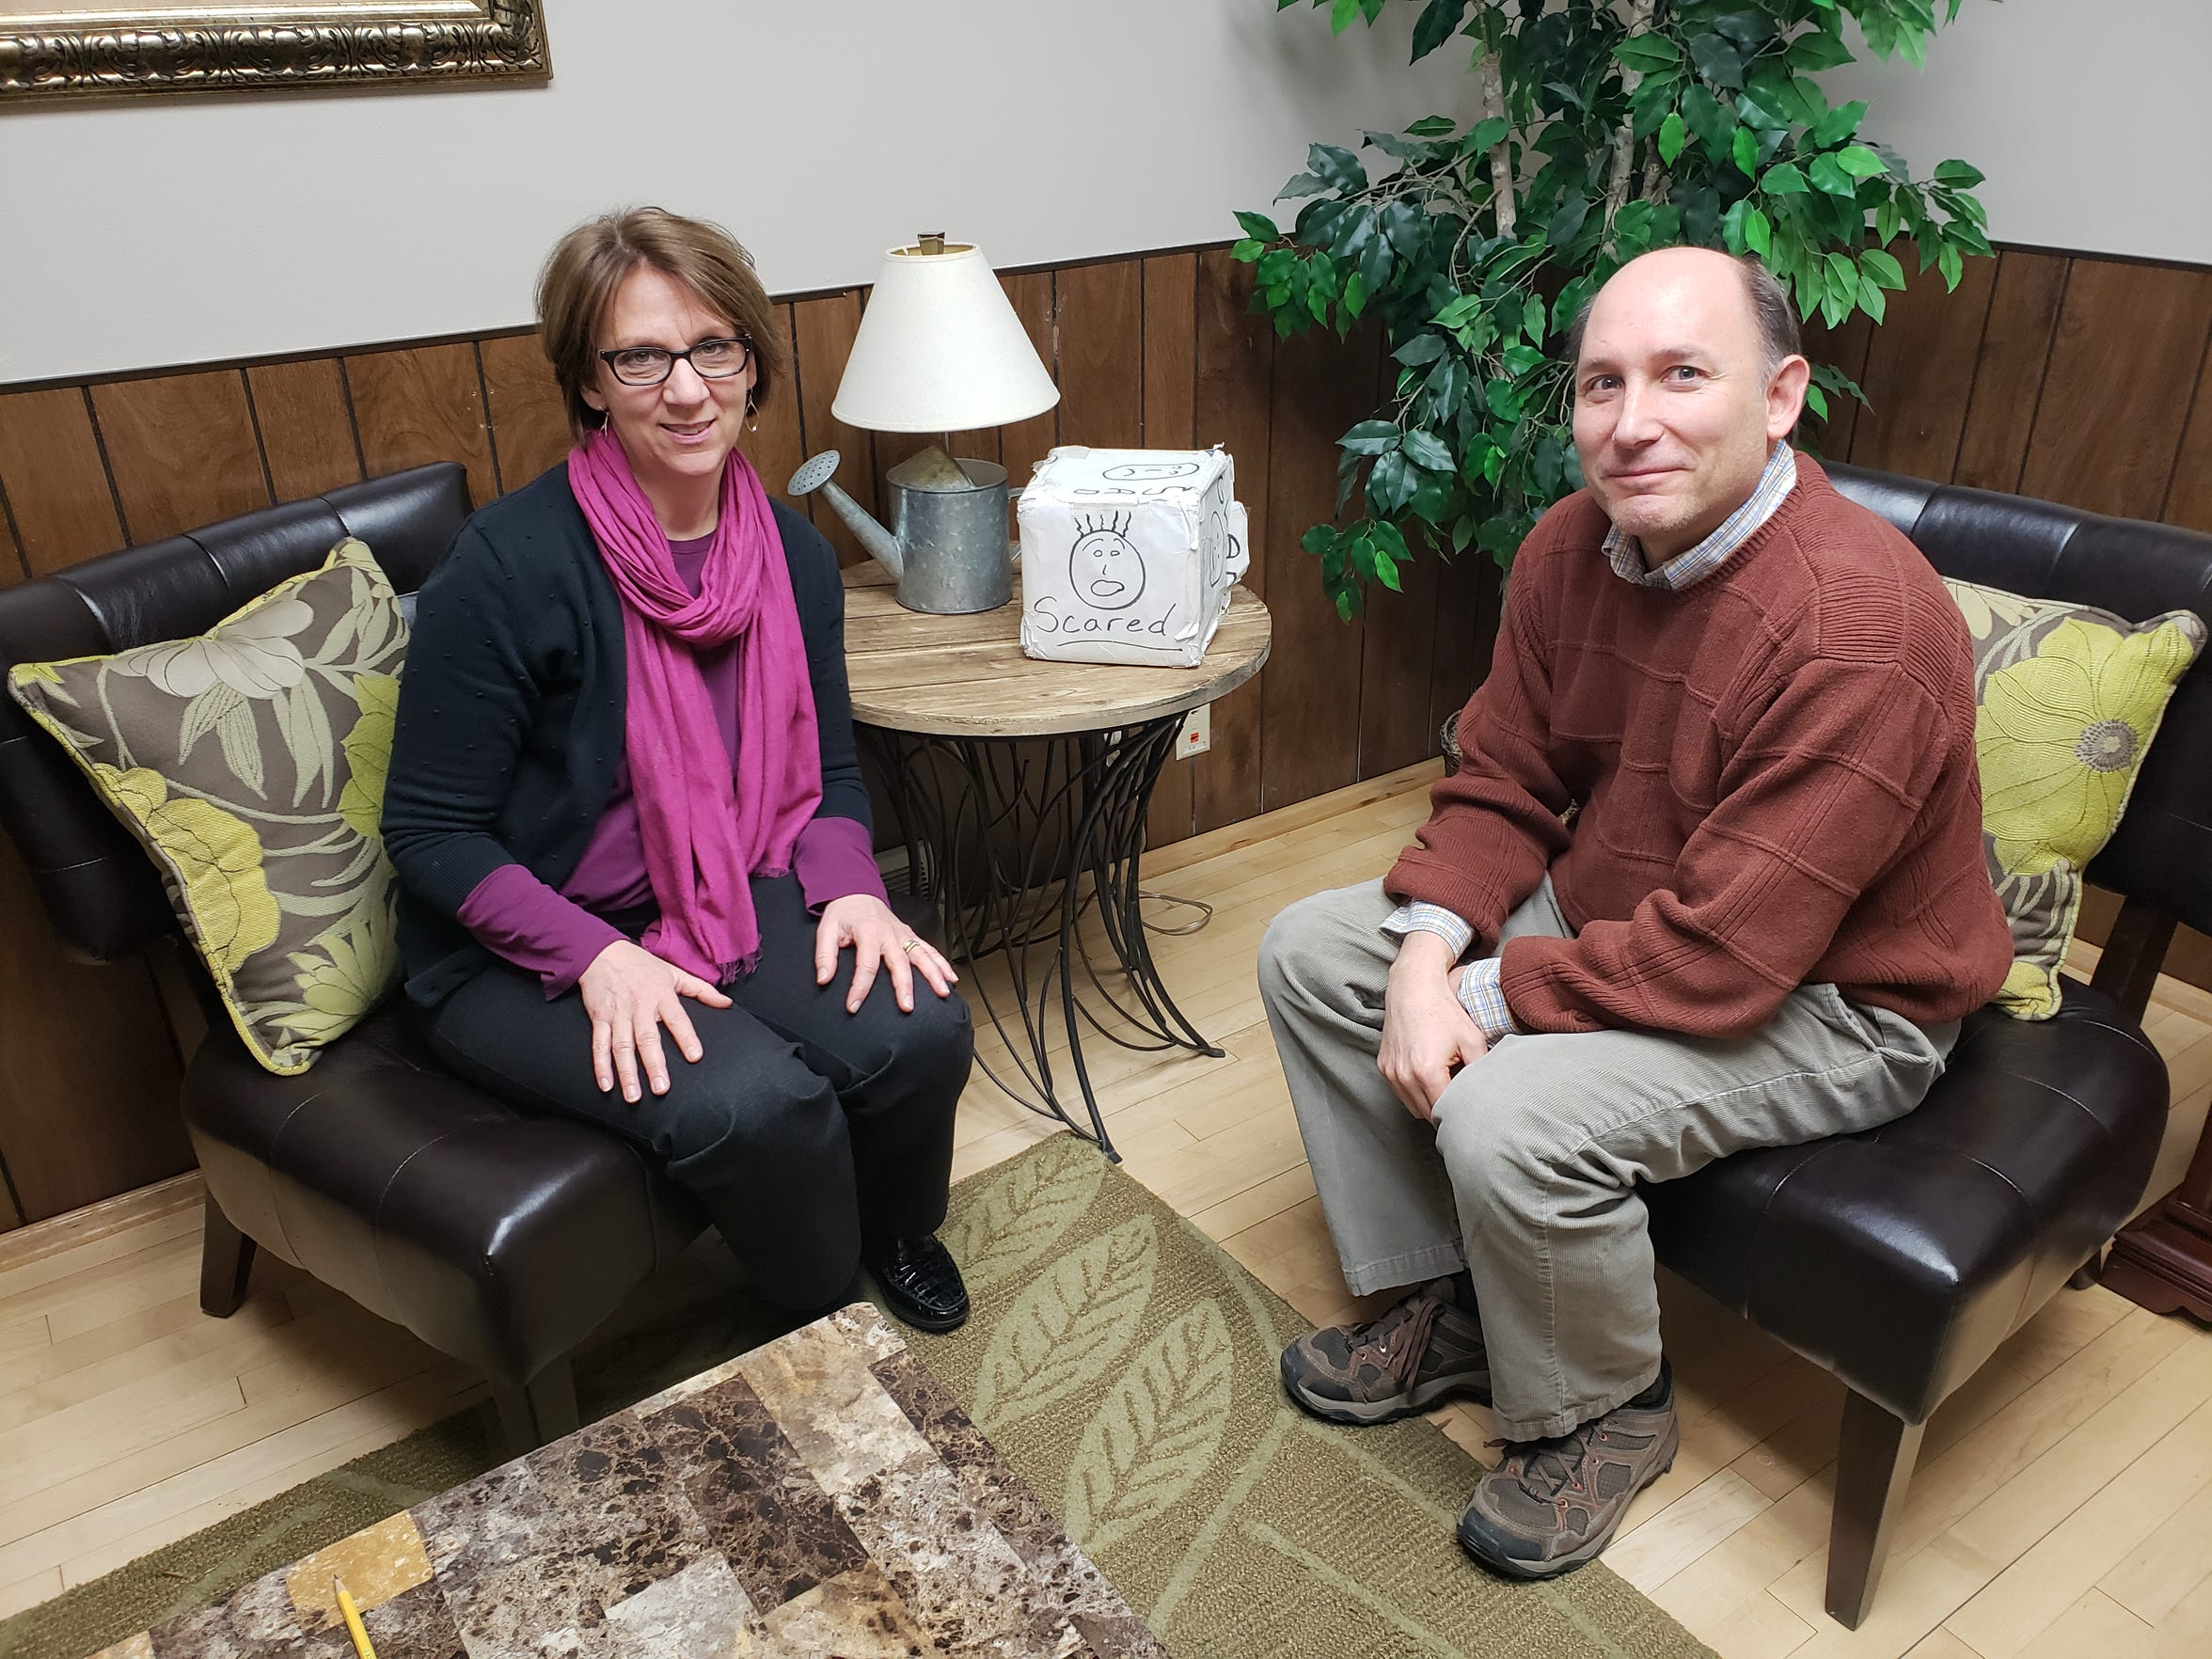 Sue Volkman and Patrick Fendt of The Parenting Network